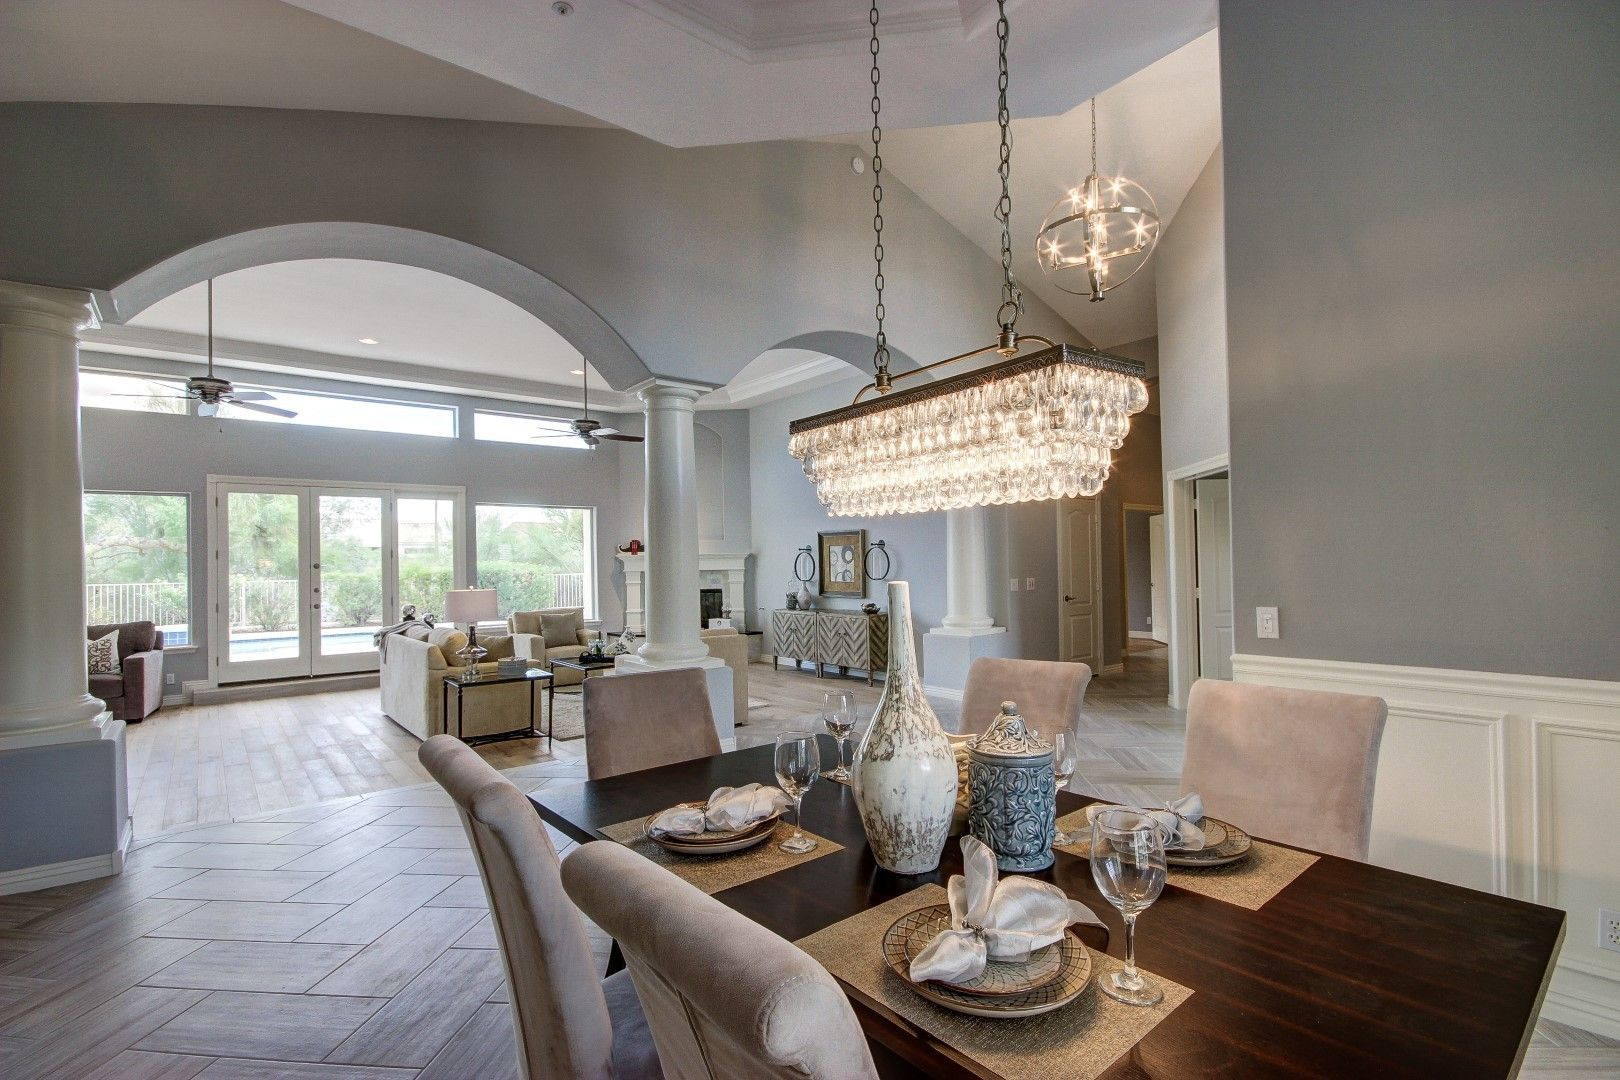 The Shape Is Great Clarissa Glass Drop Rectangular Chandelier Over Entrancing Glass Chandeliers For Dining Room Design Inspiration